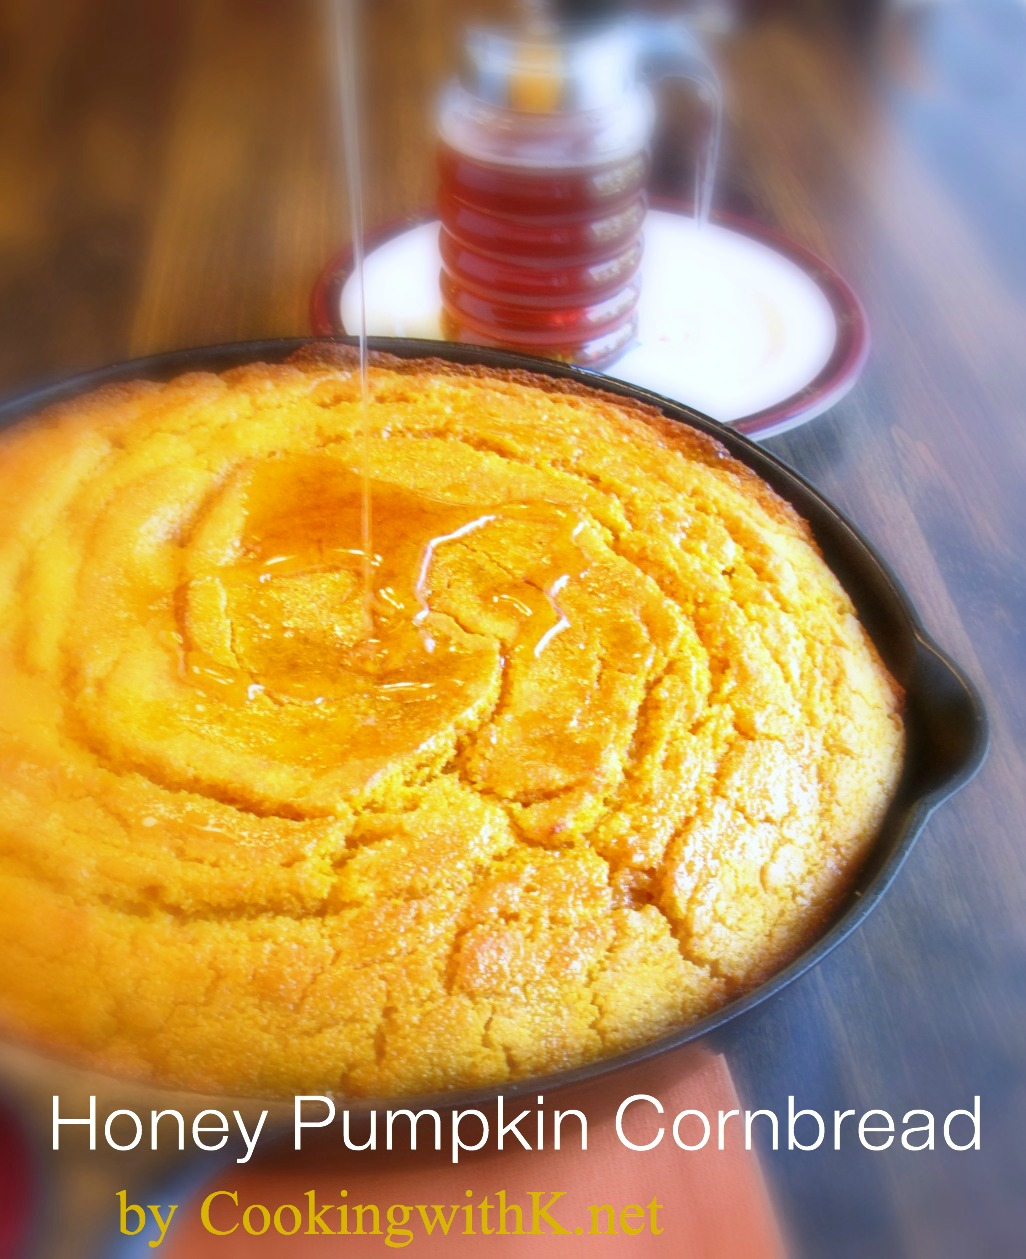 Cooking with K - Southern Kitchen Happenings: Honey Pumpkin Cornbread